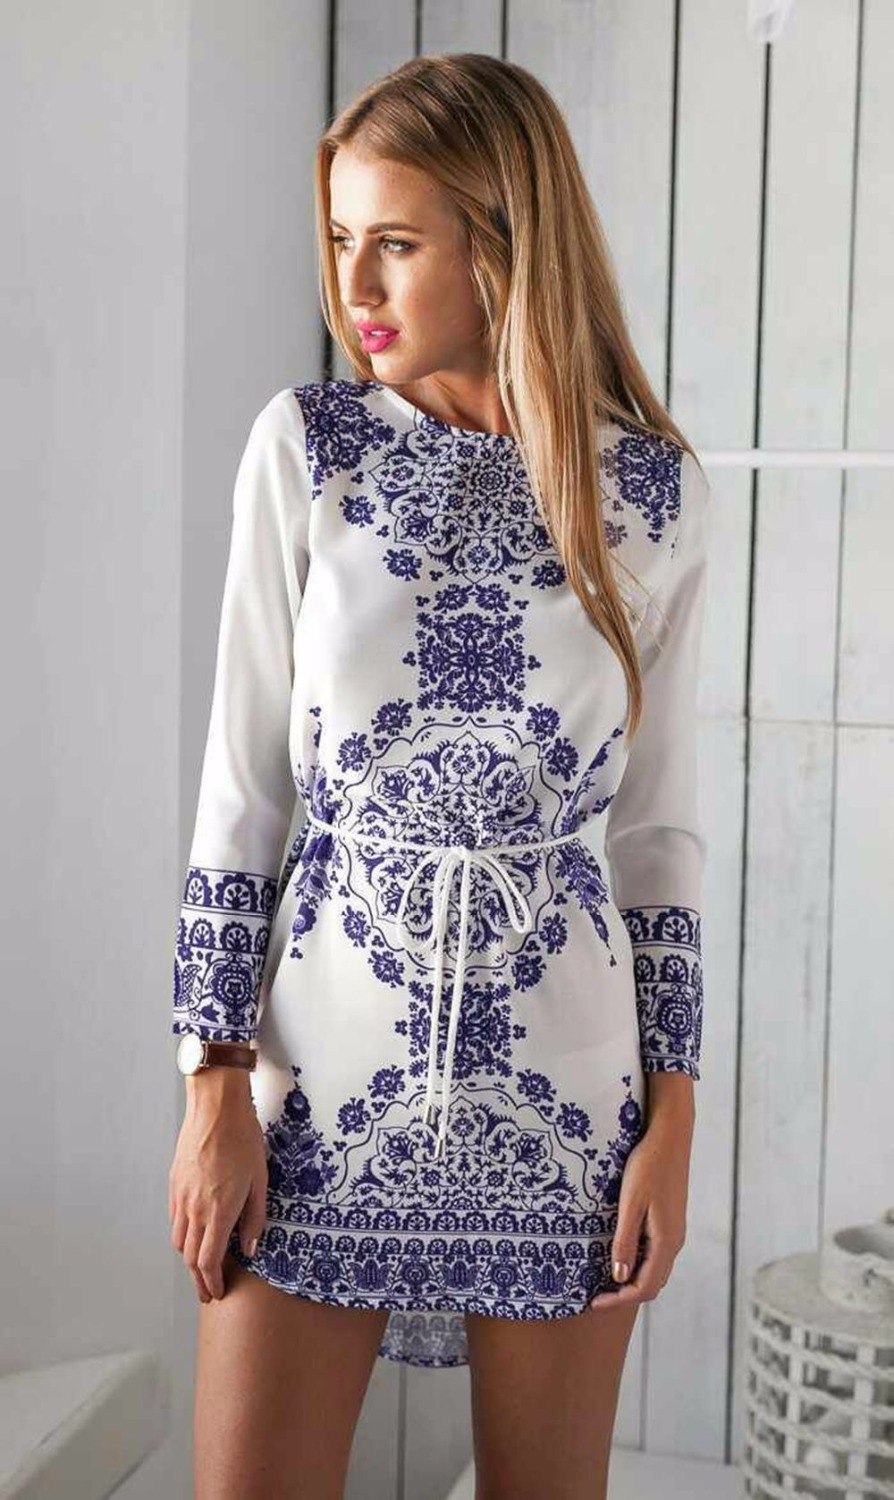 e136f327f05 2016 New Summer Women Dress Long Sleeve Print Tunic Ladies Casual Dresses  White O-neck Vintage Dress Female Vestidos Plus Size